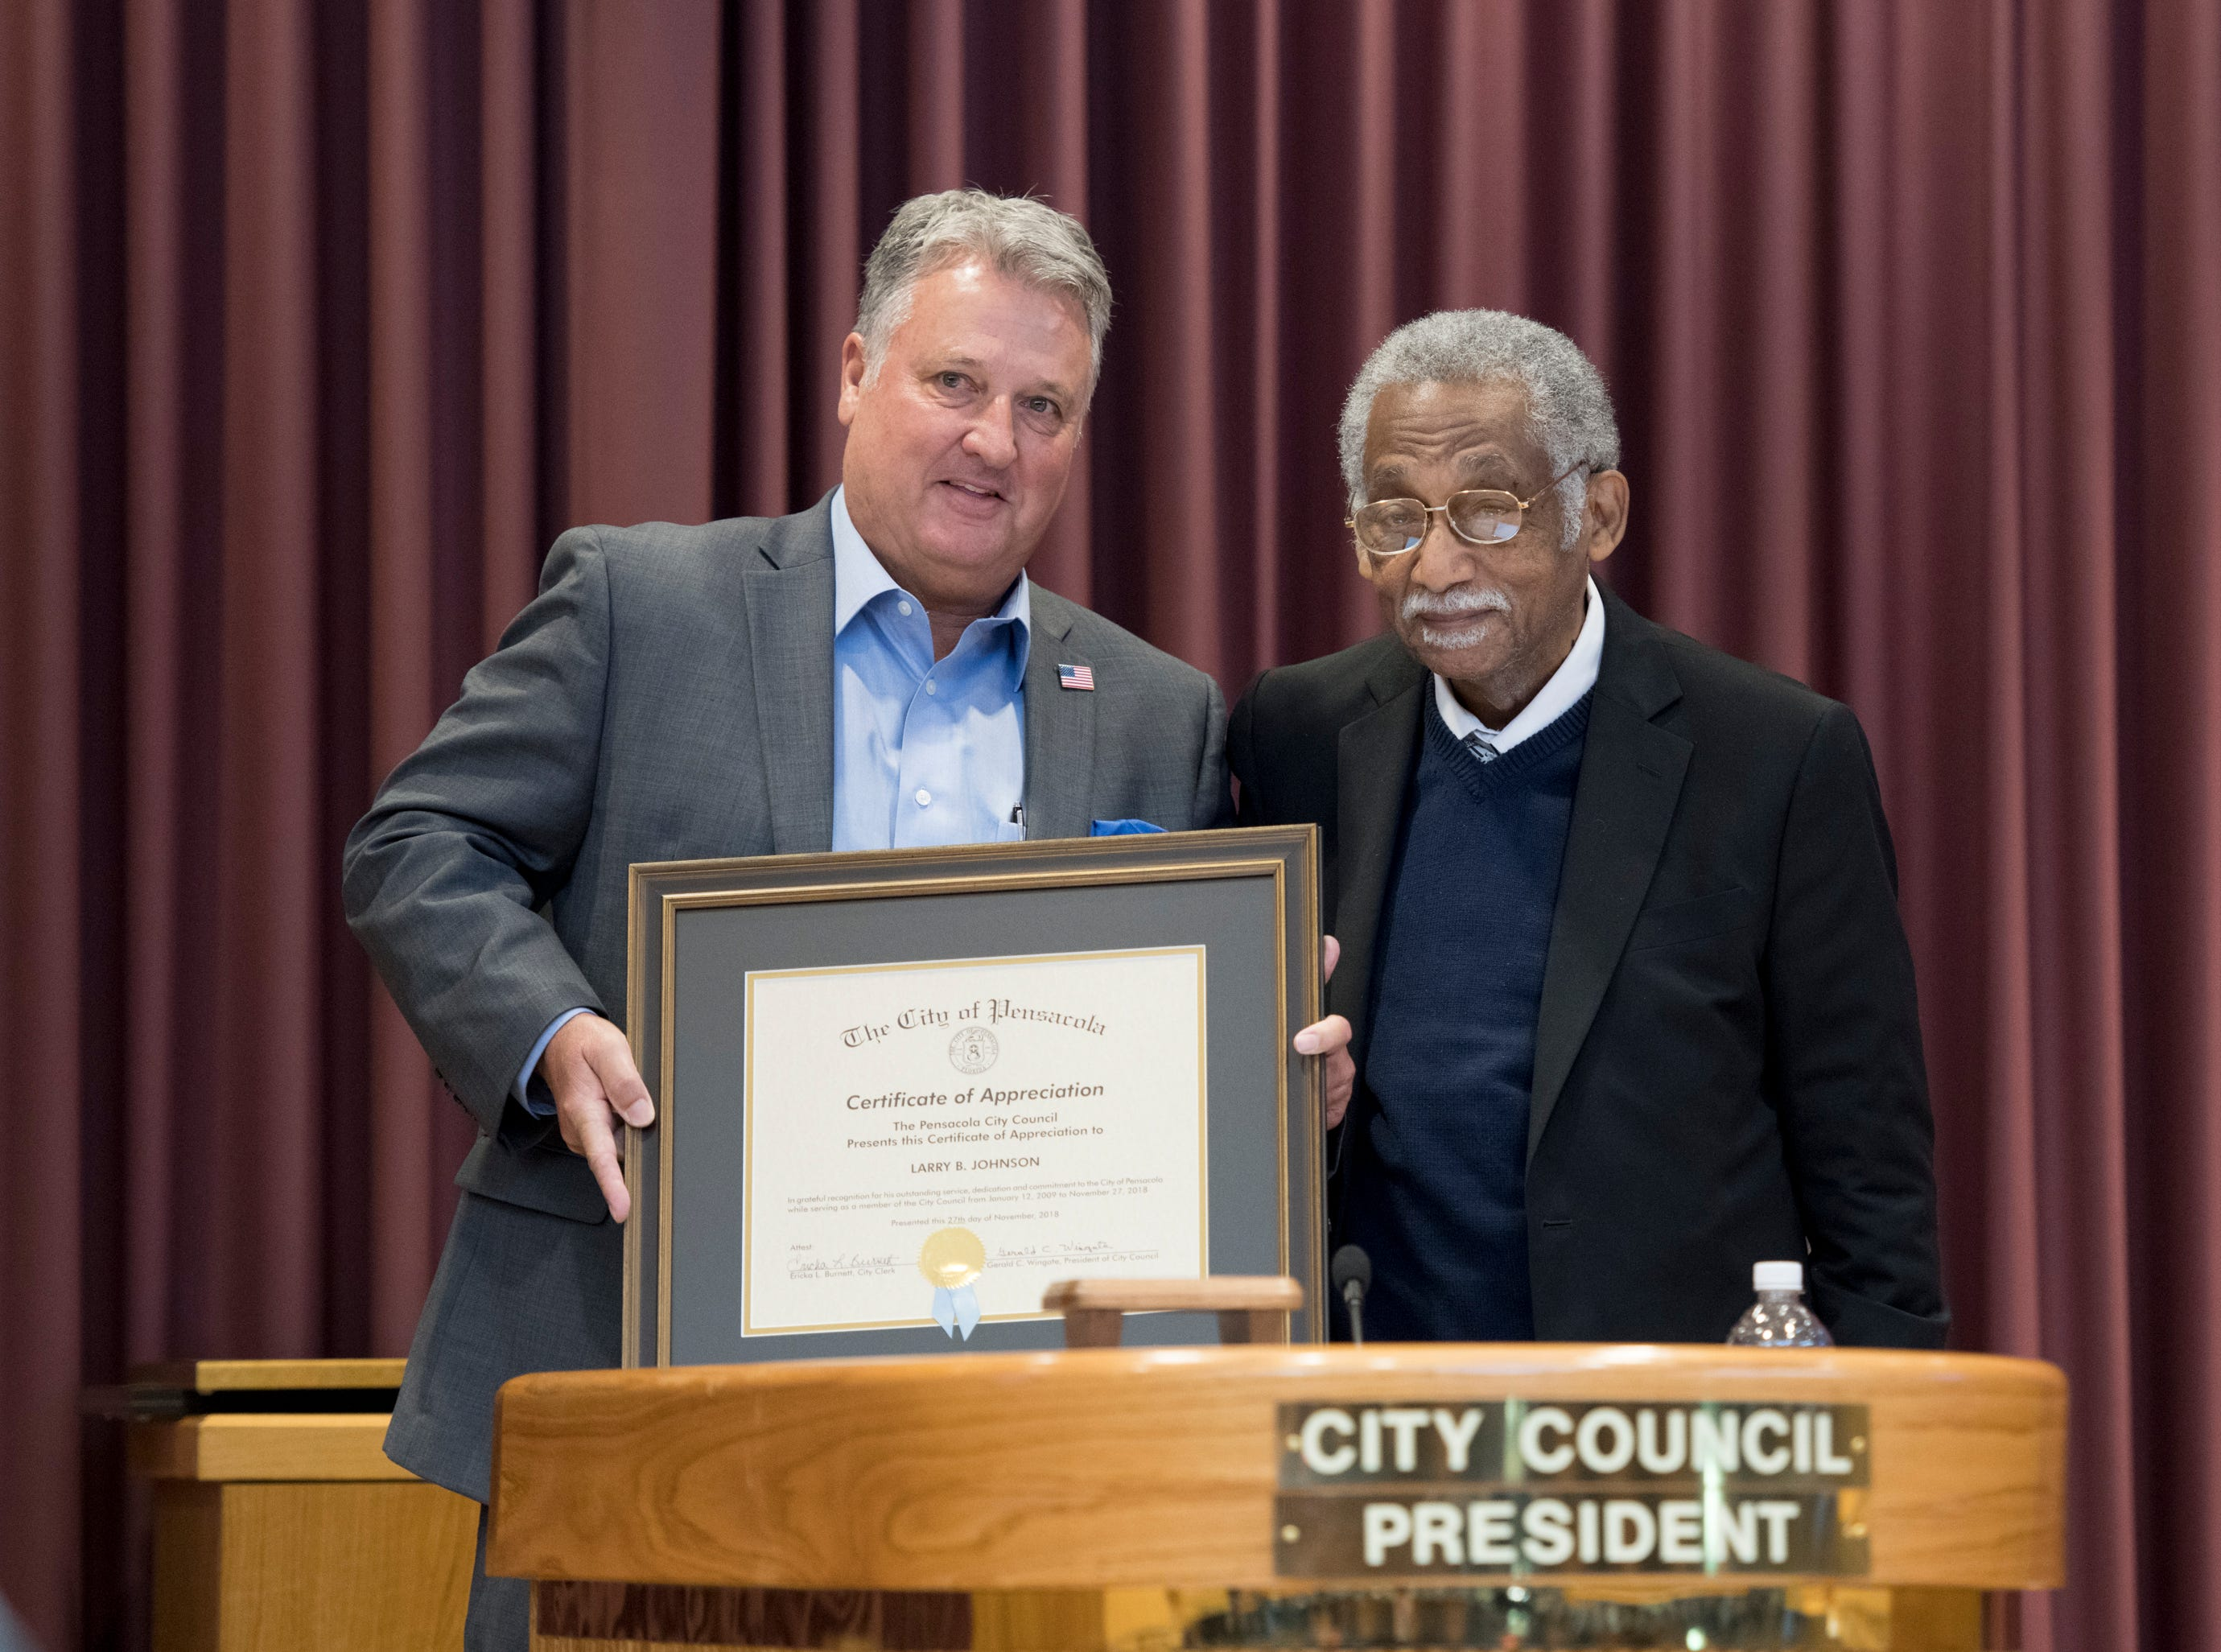 City council president Gerald Wingate, right, presents outgoing council member Larry Johnson a certificate of appreciation prior to the Pensacola City Council and Mayor installation ceremony at City Hall in Pensacola on Tuesday, November 27, 2018.